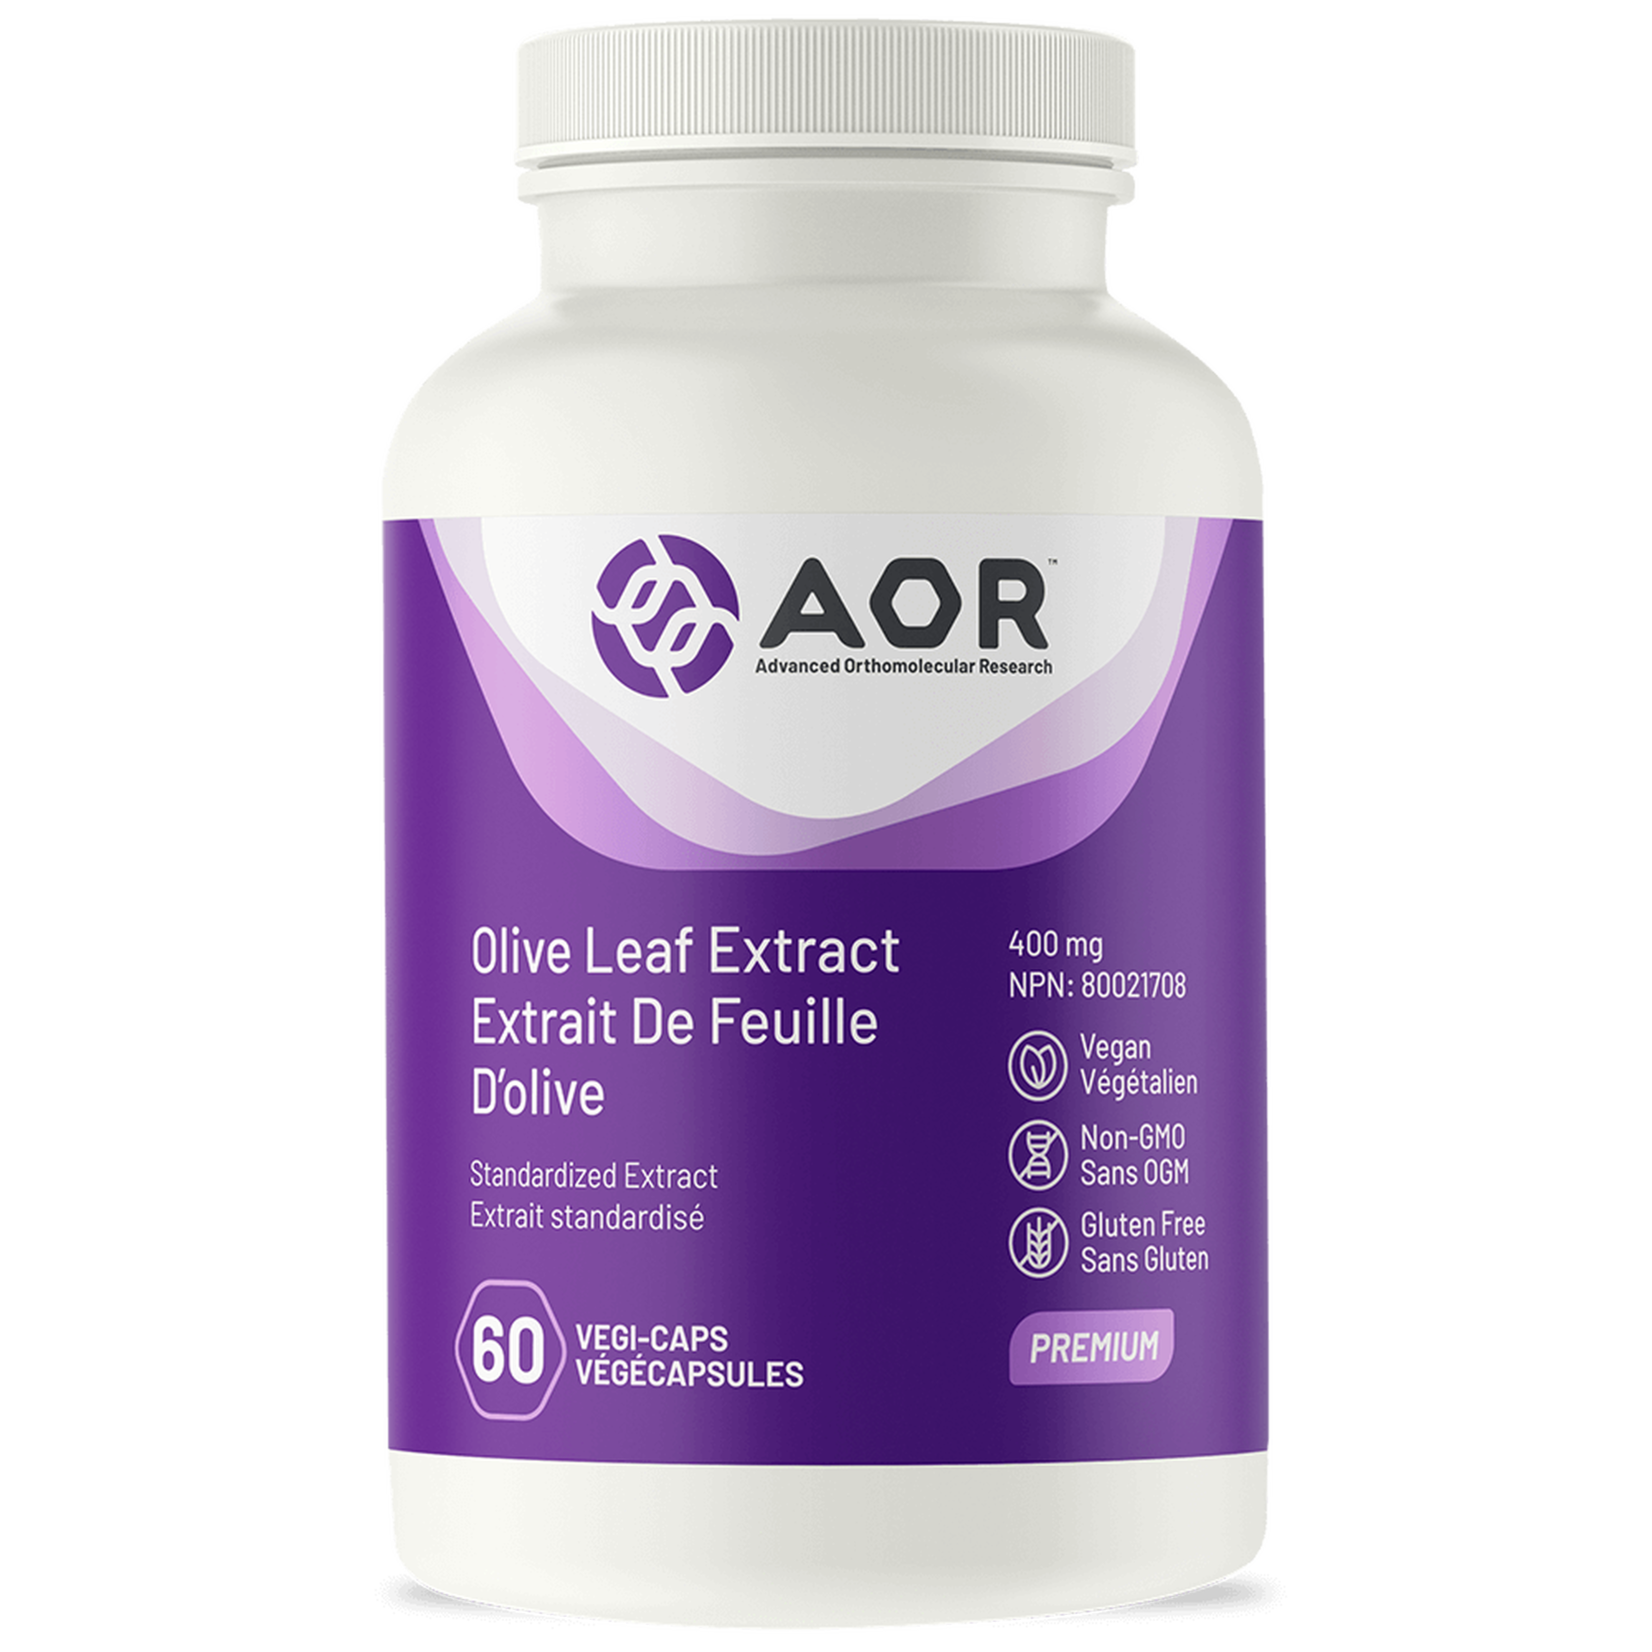 AOR AOR Olive Leaf Extract 400mg 60 caps